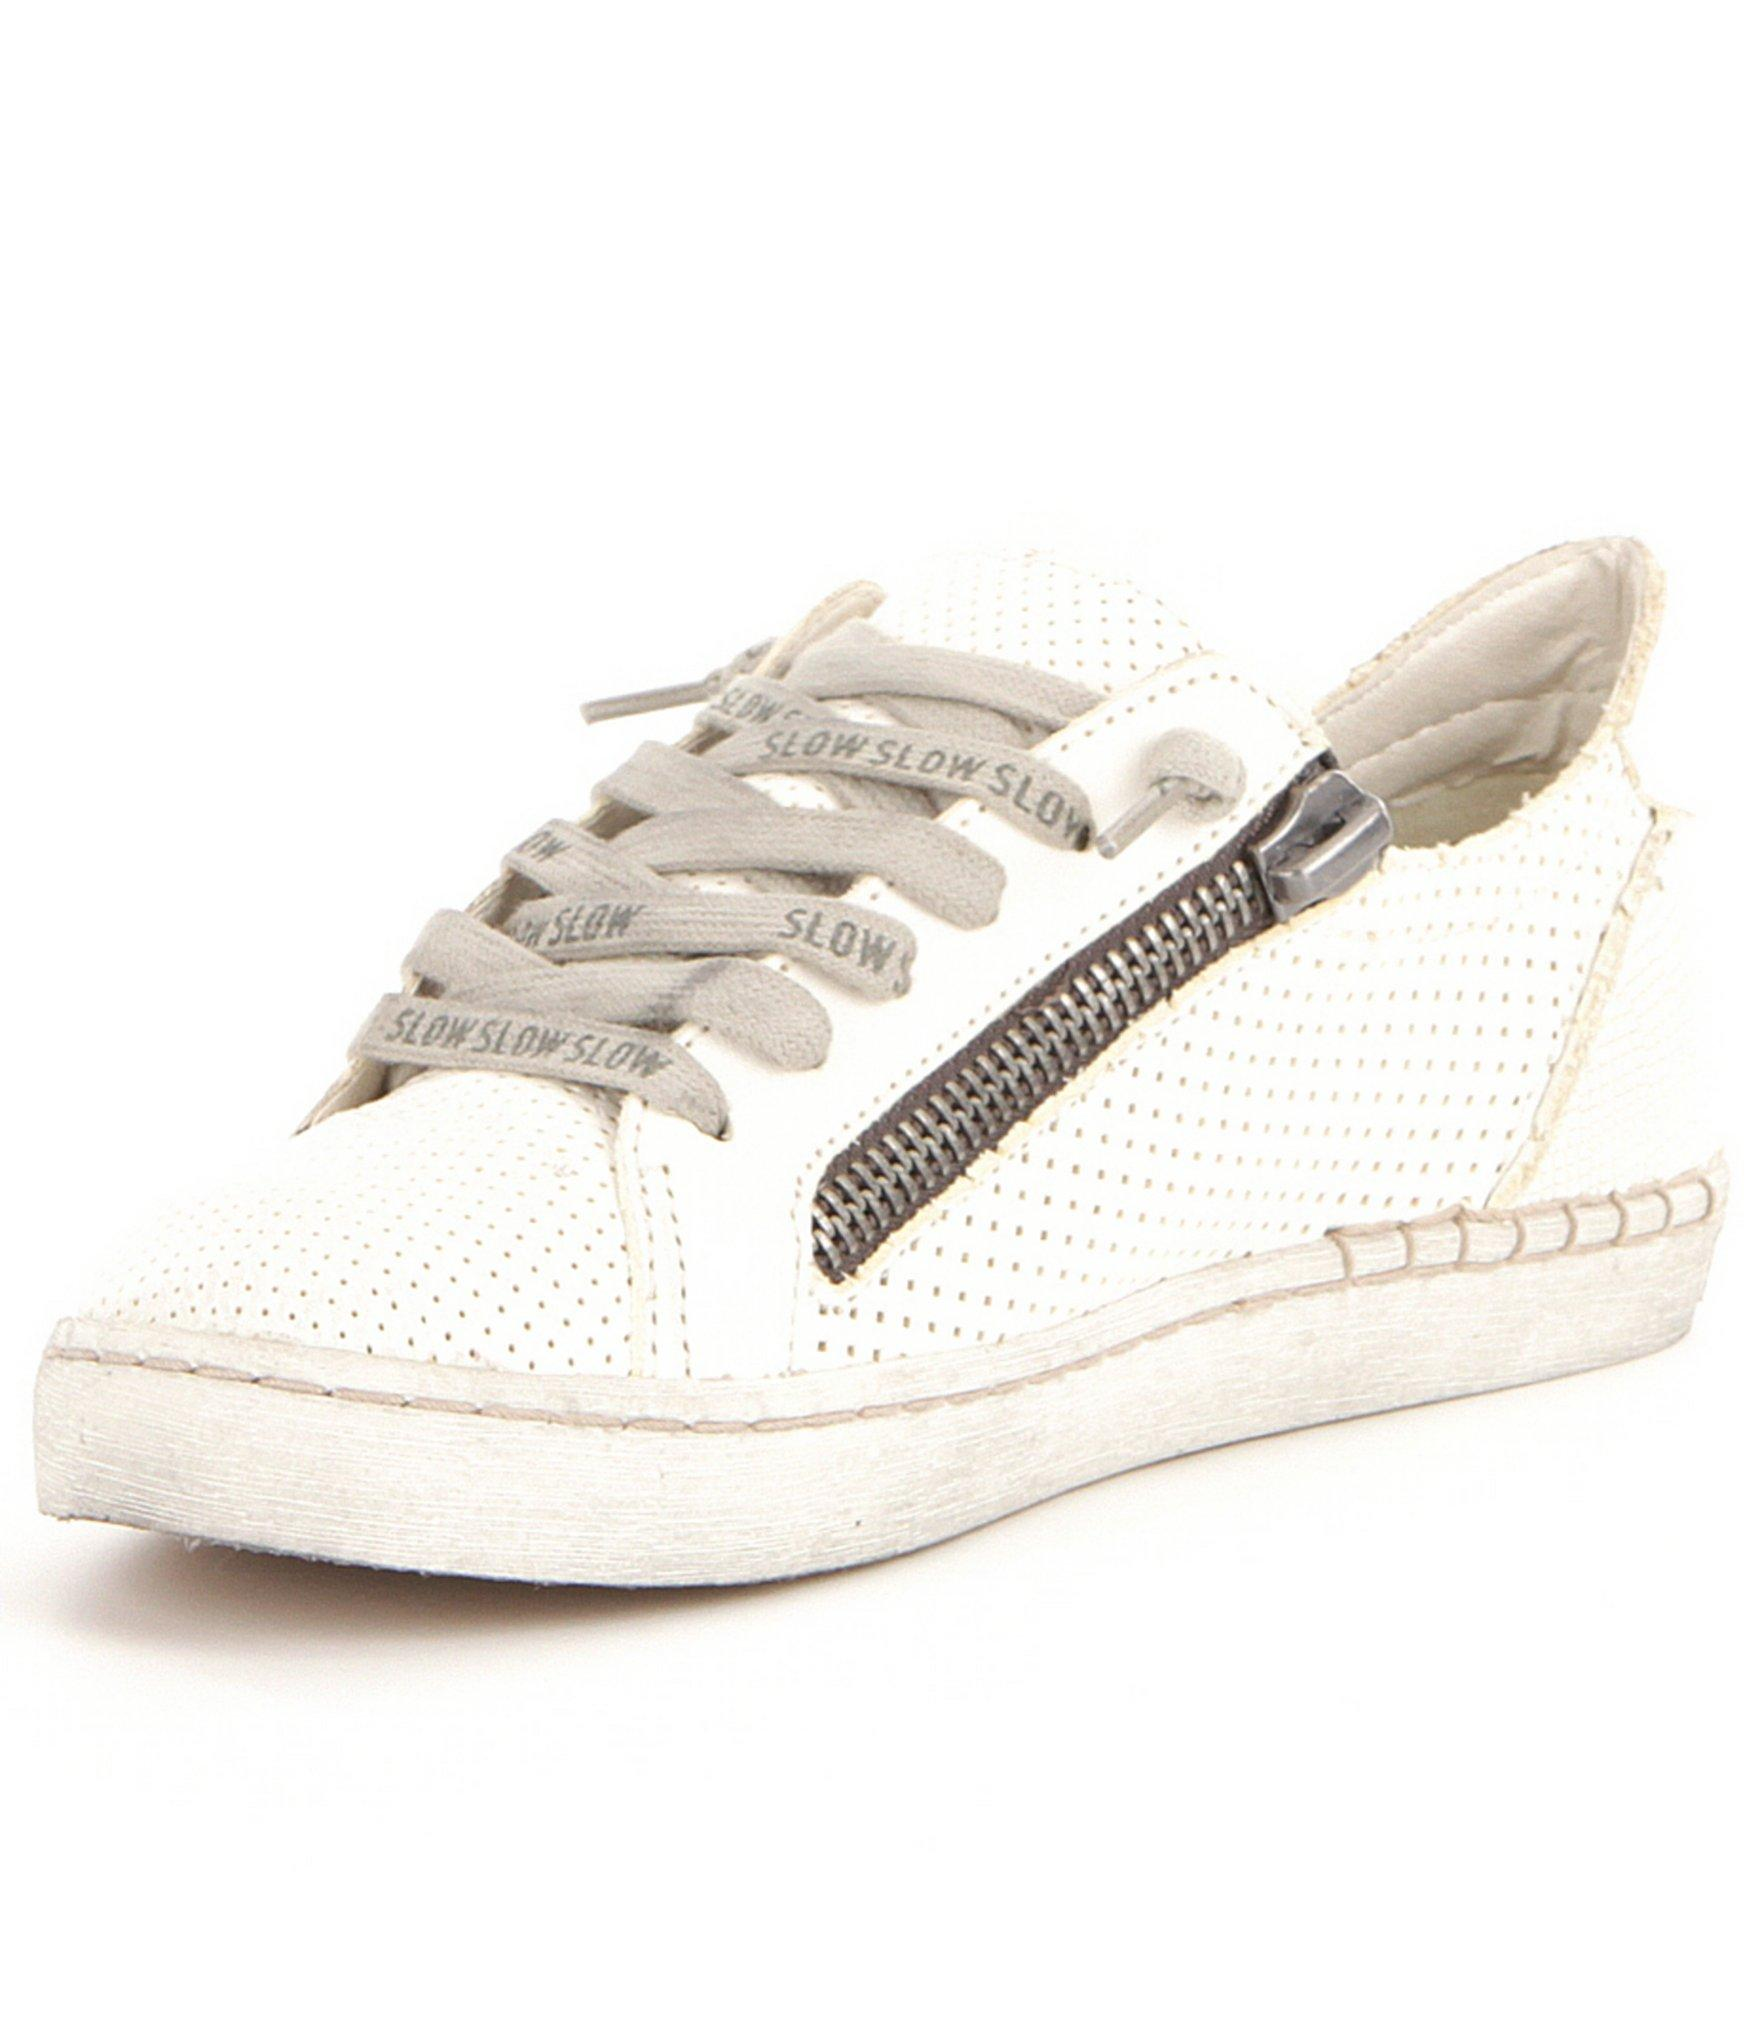 Lyst Dolce Vita Zombie Sneakers In White